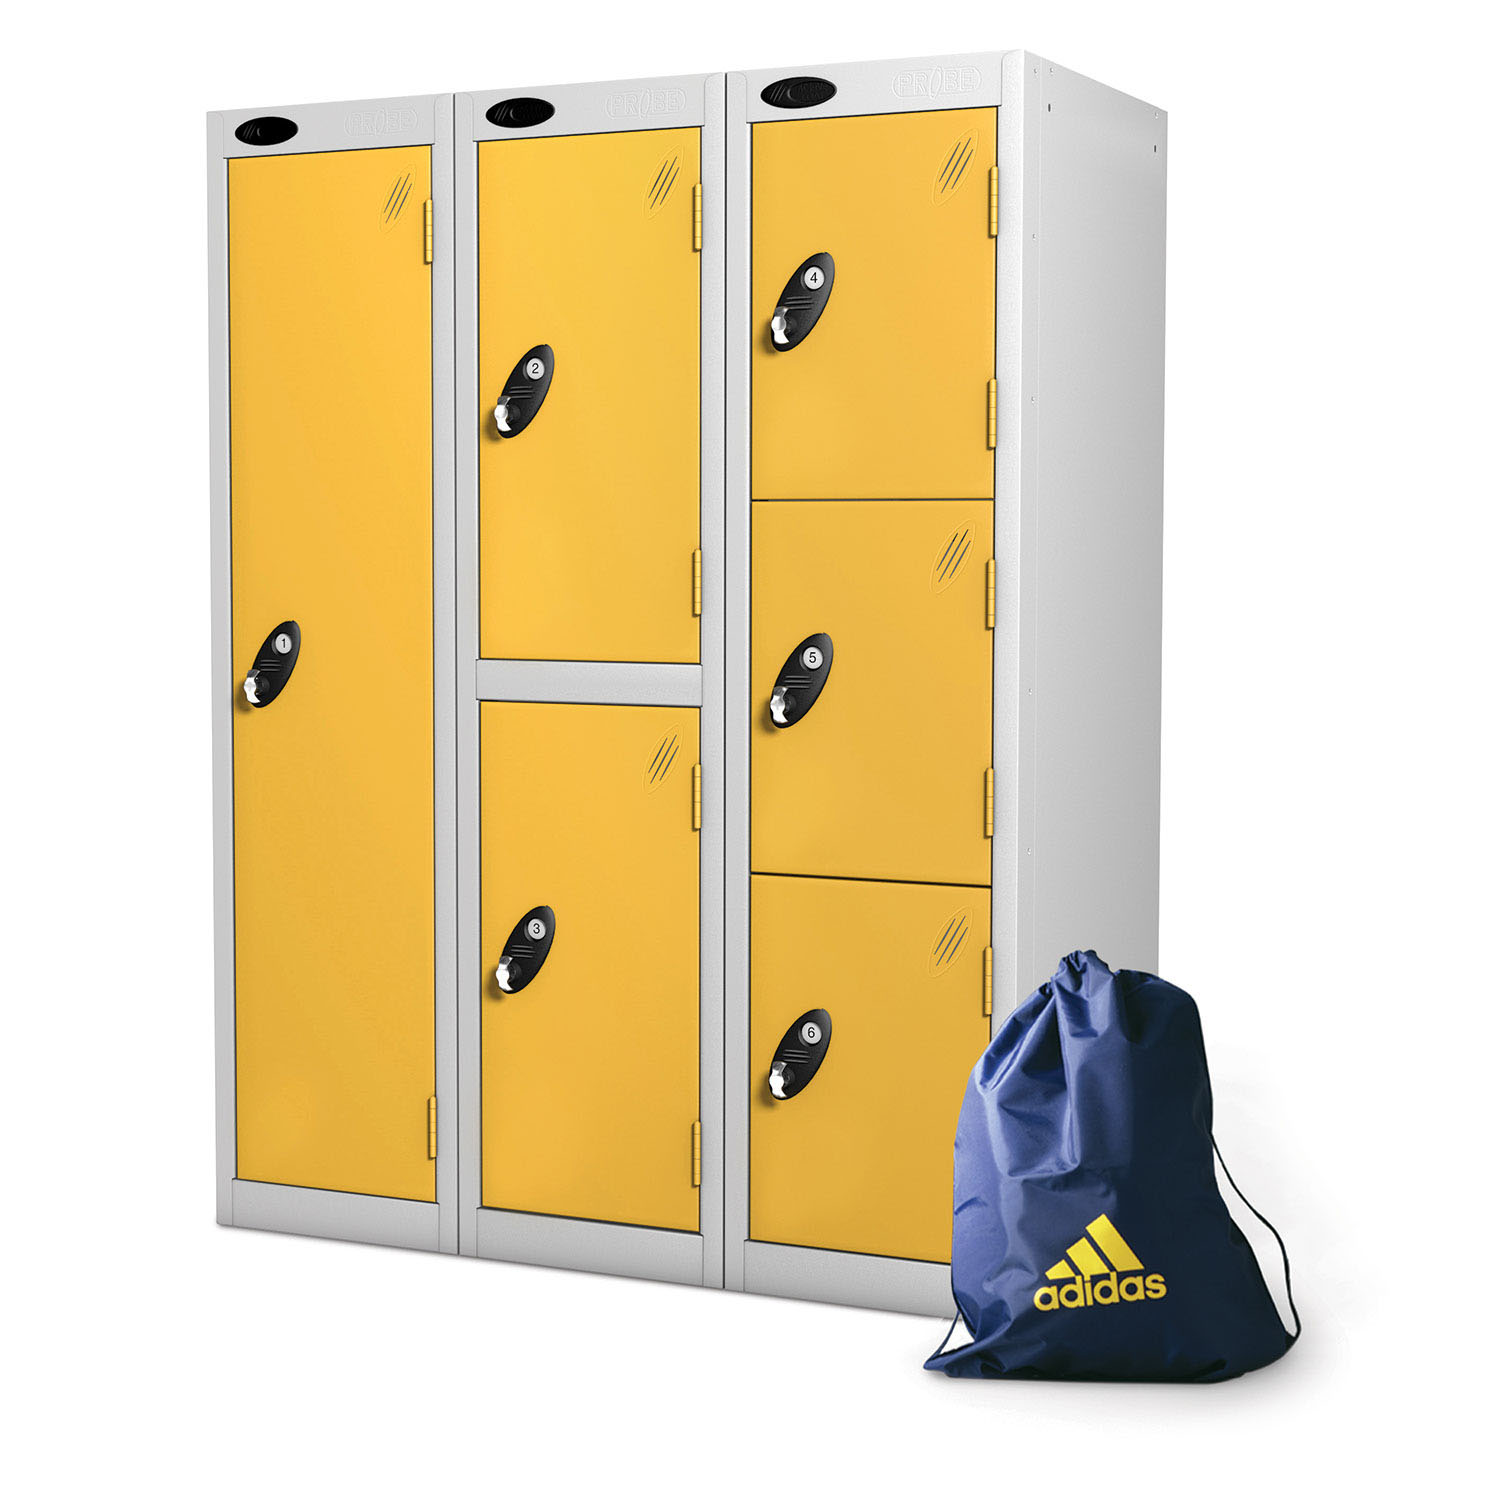 Probe 1,2,3 doors low locker in yellow colour for bags